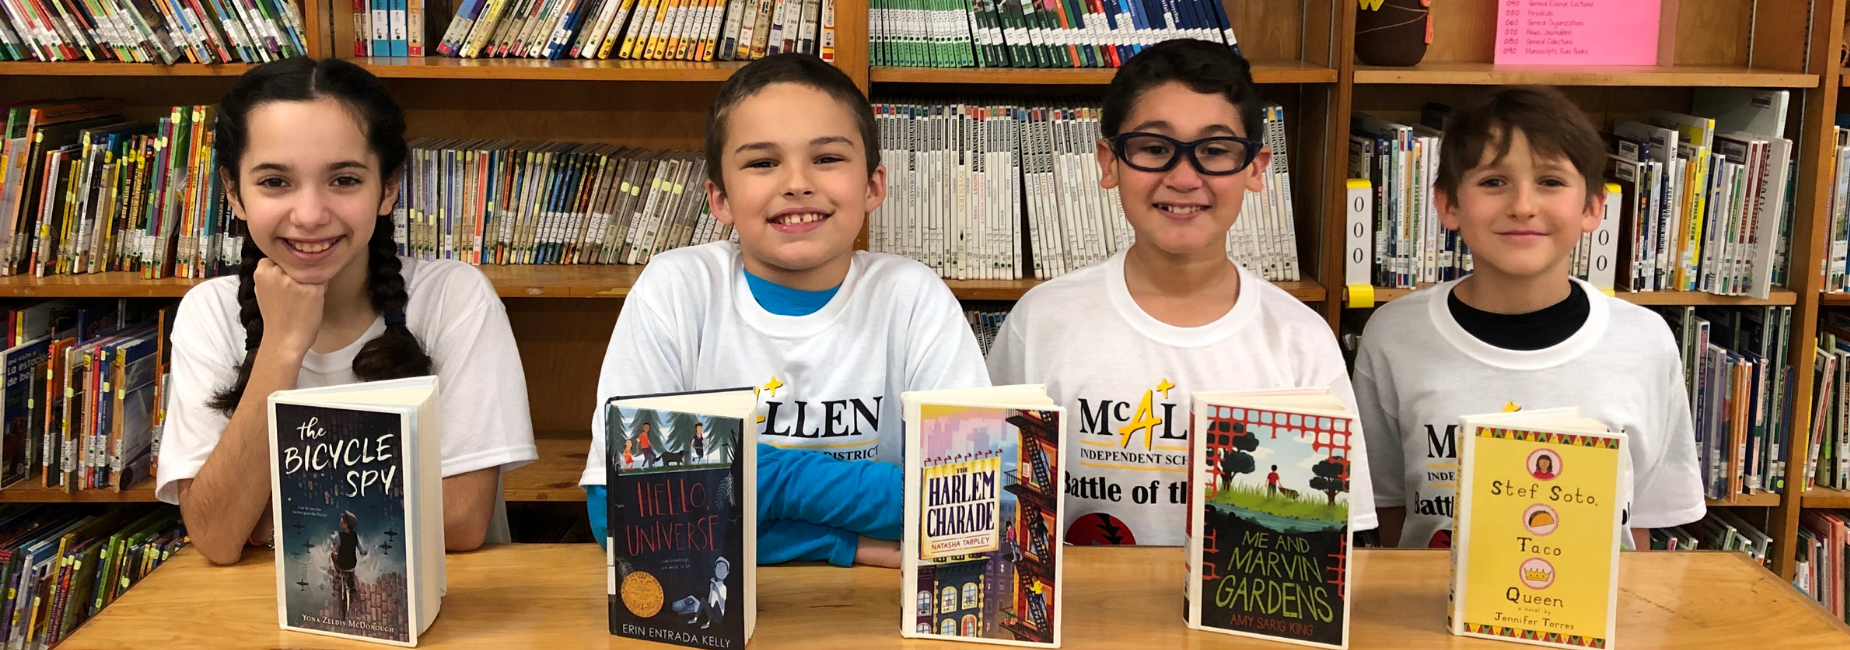 Milam Battle of the Books Team